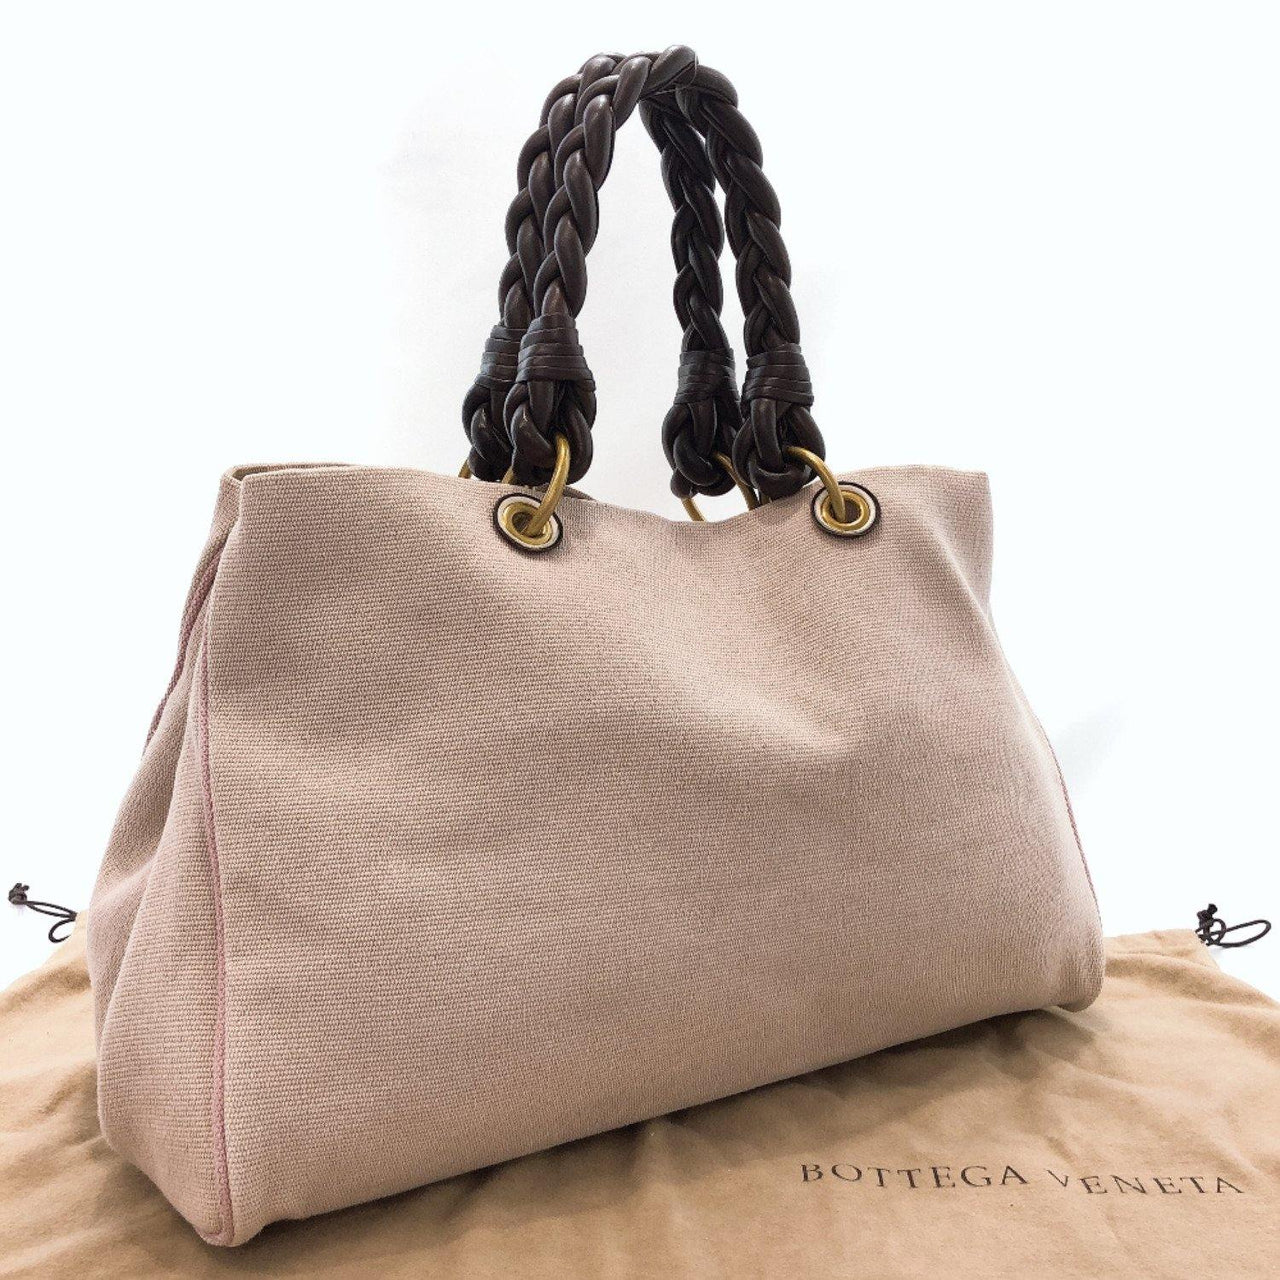 BOTTEGAVENETA Tote Bag canvas pink beige Women Used - JP-BRANDS.com